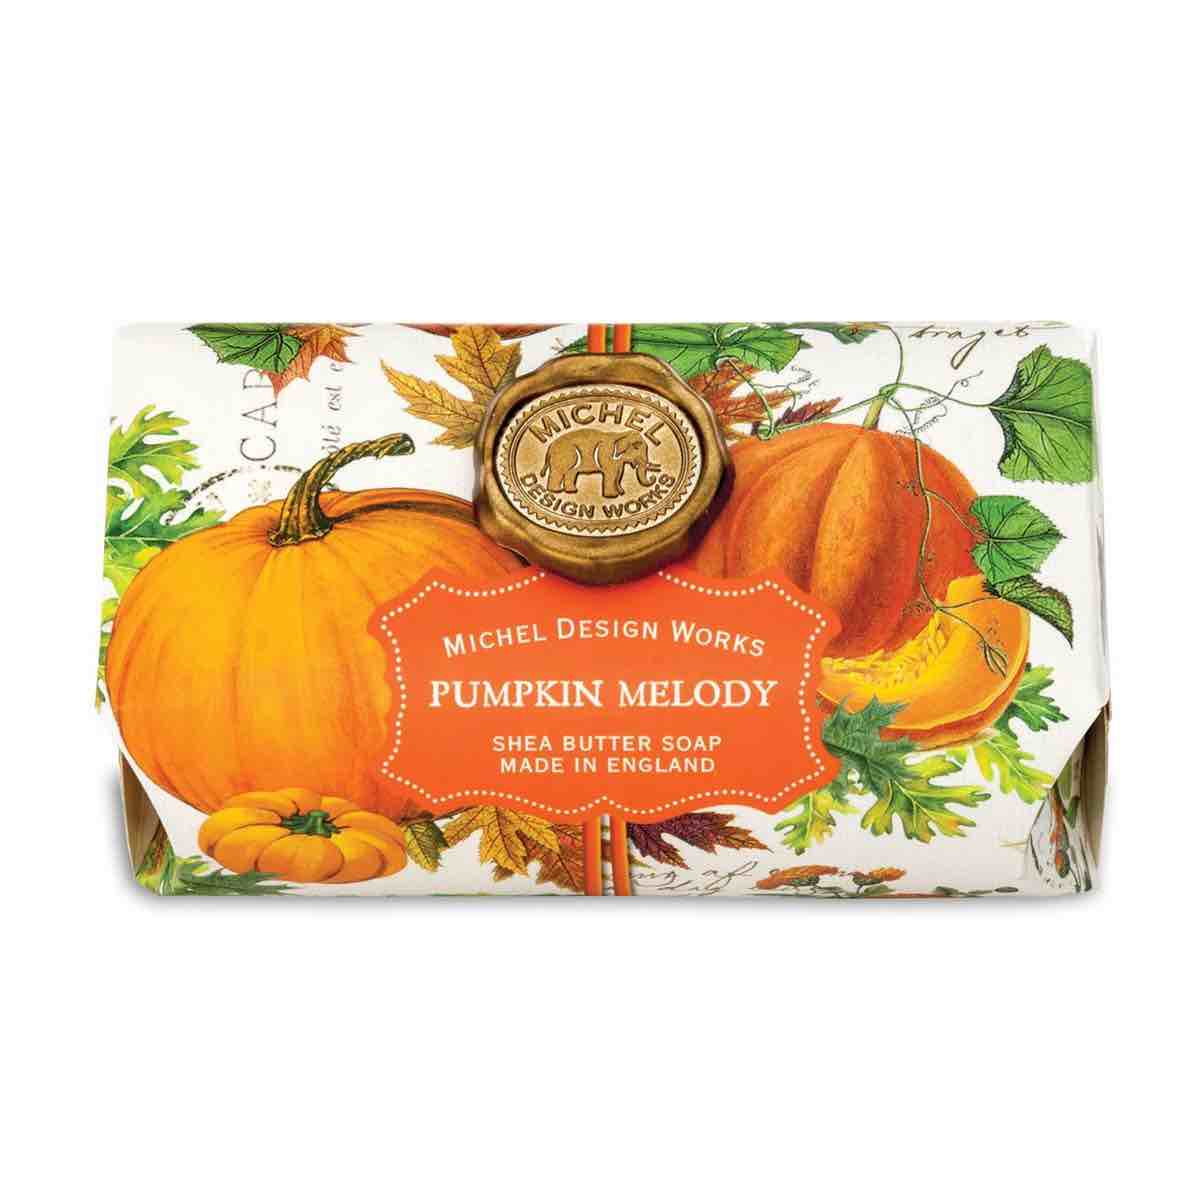 Michel Design Works Large Bath Soap Bar | Pumpkin Melody